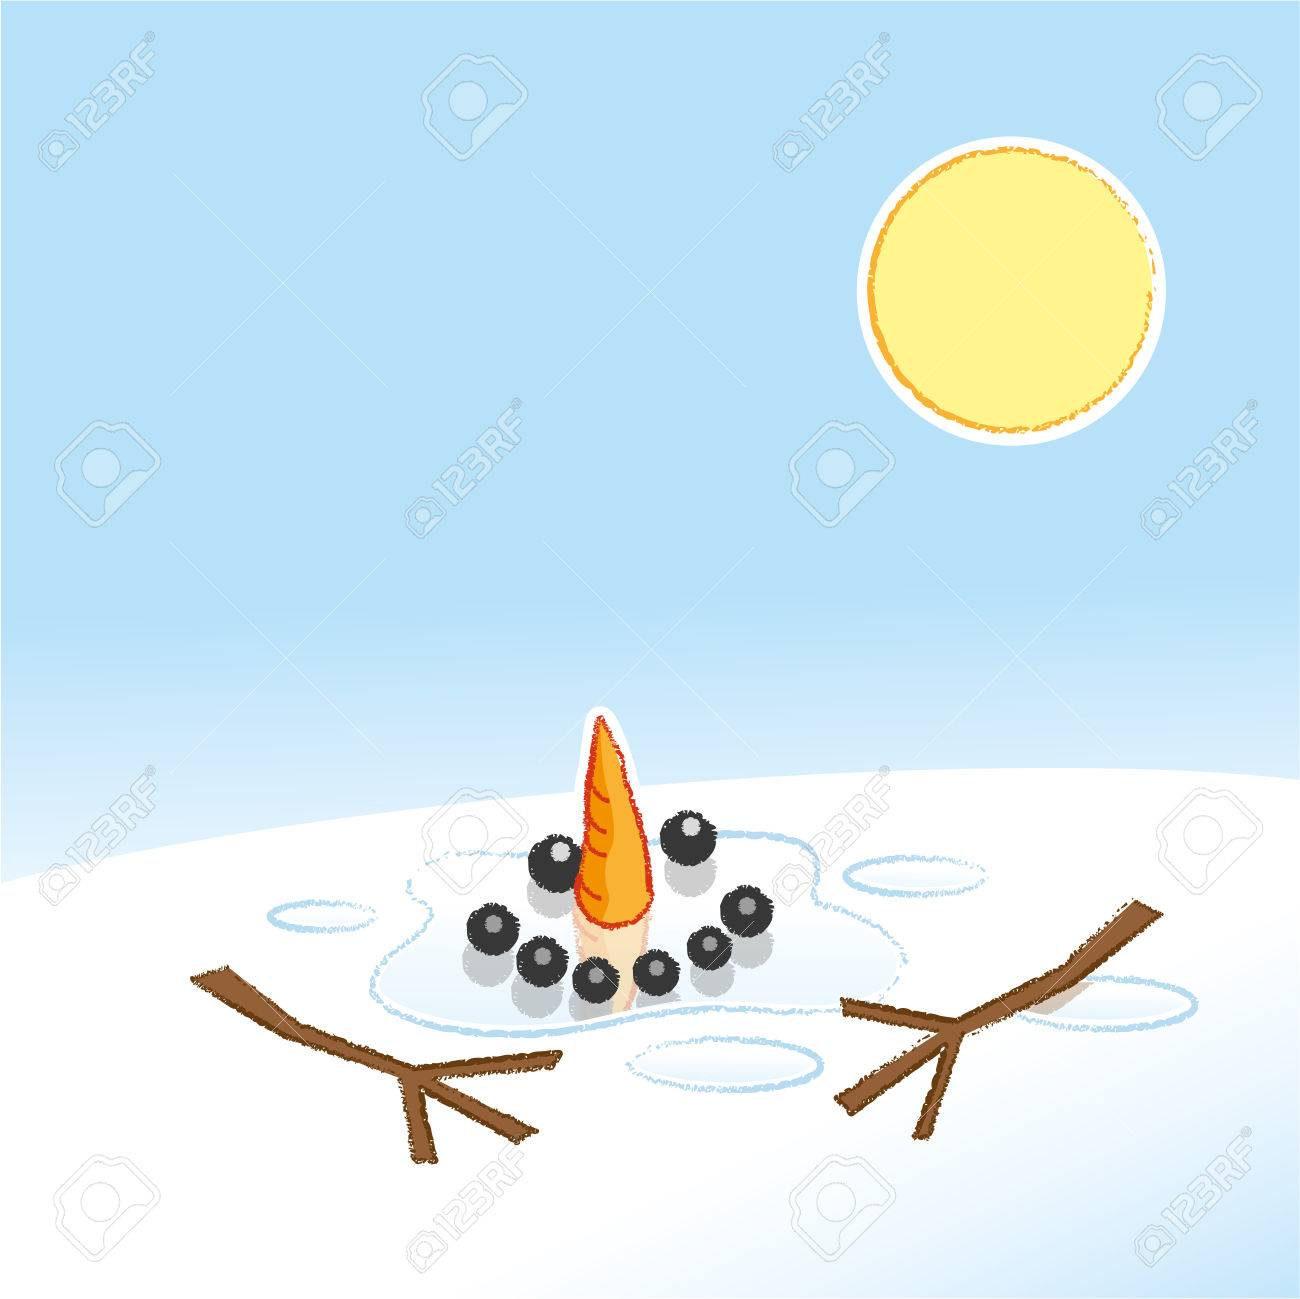 Happy Melting Snowman With Carrot Nose And Stick Arms In Pool Royalty Free Cliparts Vectors And Stock Illustration Image 64615983